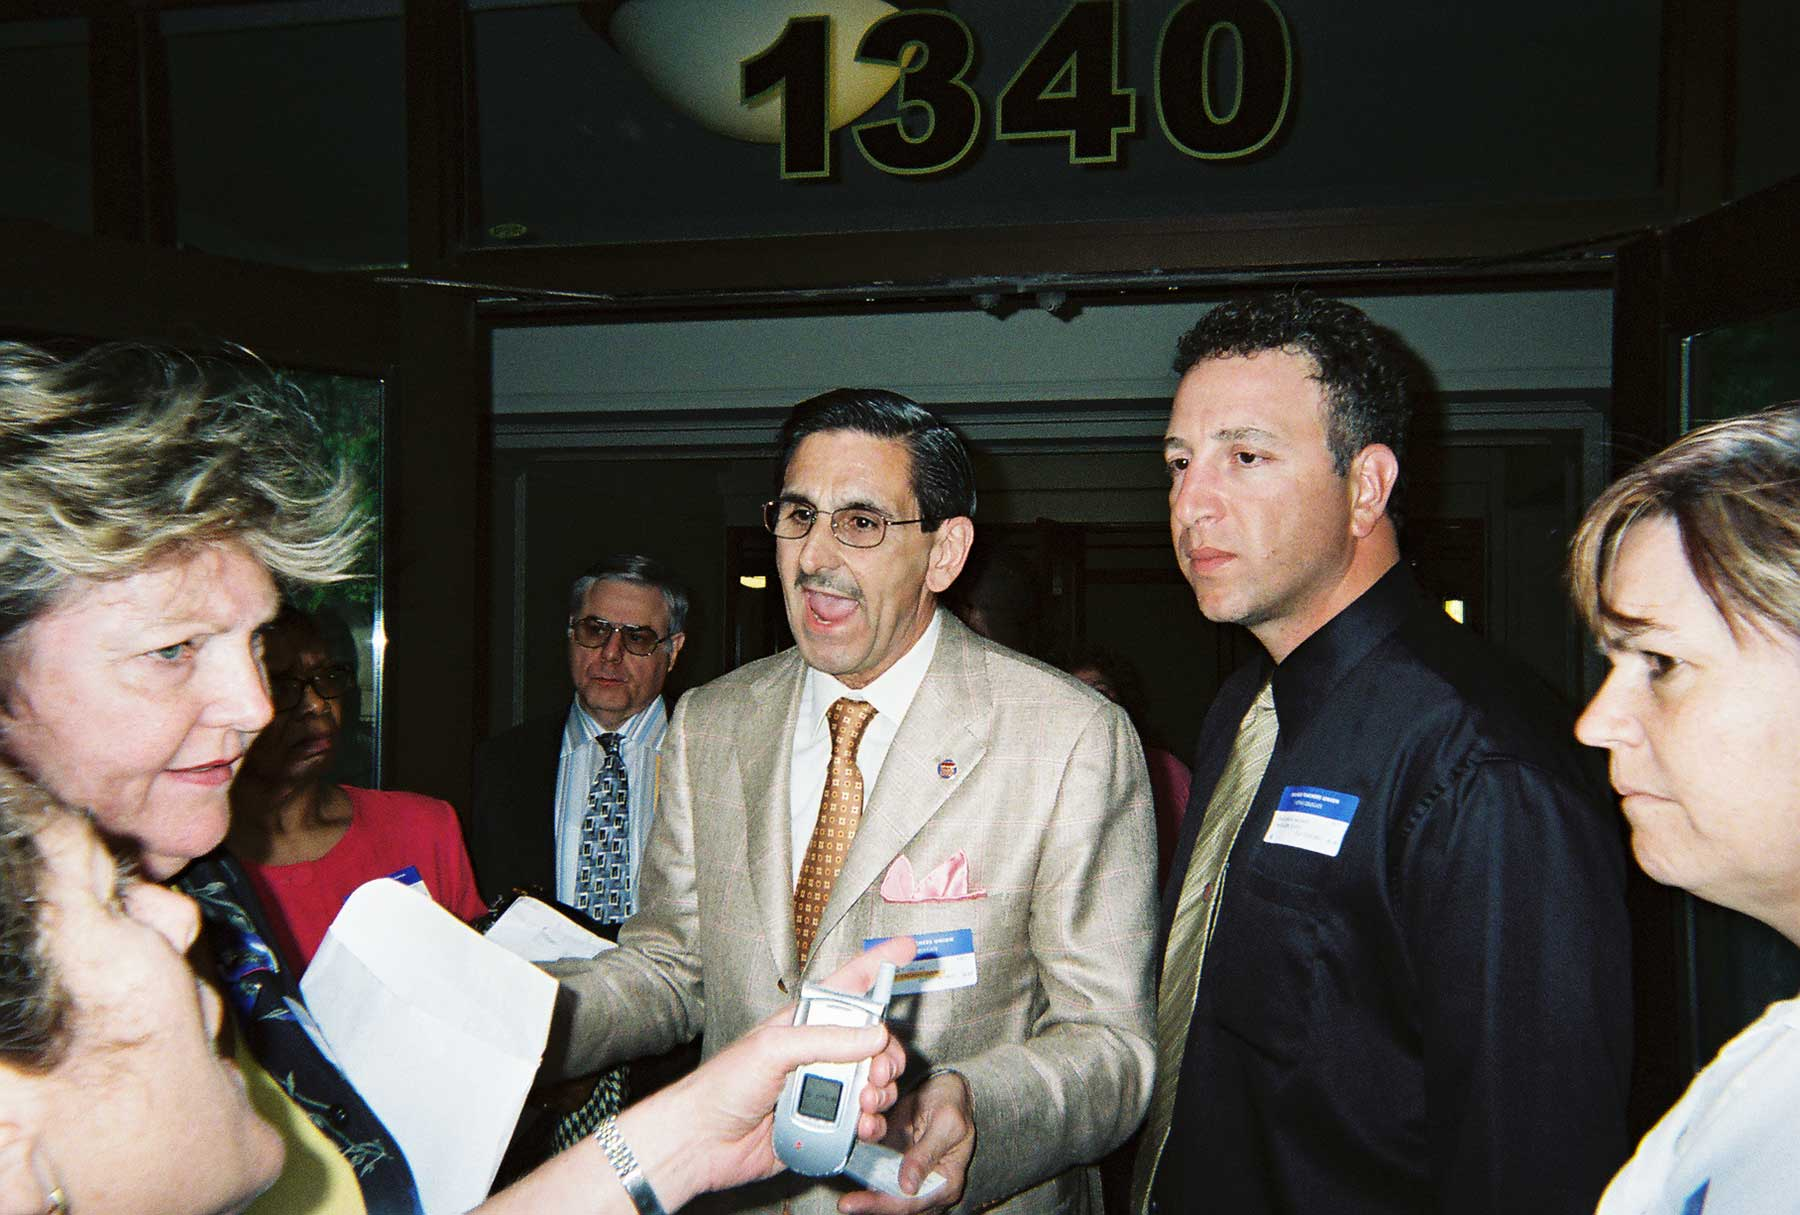 "June 1, 2005. Chicago Teachers Union Vice President Ted Dallas (above, center) talks with irate union members including School Clerk Delegates Maureen Callaghan (left) and Schurz High School Delegate Lois Jones (right) after someone from the CTU leadership tried to have former CTU President Deborah Lynch arrested. The verbal and sometimes physical attacks on Lynch during Marilyn Stewart's first term (2004-2007) have long been compared to the dirty tricks conjured up for the Bush Administration in Washington, D.C., by Karl Rove. Of all the dirty tricks, the nastiest came with the arrest of Lynch, who was escorted out of the House meeting by two armed Chicago police officers. At the time, several observers believed that Dallas had called the police, and the police told Substance reporter George Schmidt that the call came from someone identifying himself as the ""vice president."" Dallas claimed that he had not called the police. Lynch was released from police custody after CTU officials refused to sign the arrest complaint that she had been ""disorderly"" during the House of Delegates meeting. Others in the photograph above are CTU security coordinator Rick Perrote (behind Dallas), who is now an officer of the Marilyn Stewart faction of the ""UPC,"" and Ted Hajiharis (a field rep, to the right of Dallas). Two complete stories about the incident (""Scofflaw Union Chiefs Run Outlaw Meeting"" by Theresa Daniels and ""CTU officials attempt to arrest Deborah Lynch"" by George N. Schmidt are still available on the ""old"" Substance Website at www.substancnews.com. The new Substance site is www.substancenews.net. Substance photo above from the June 1, 2005 CTU meeting by George N. Schmidt."